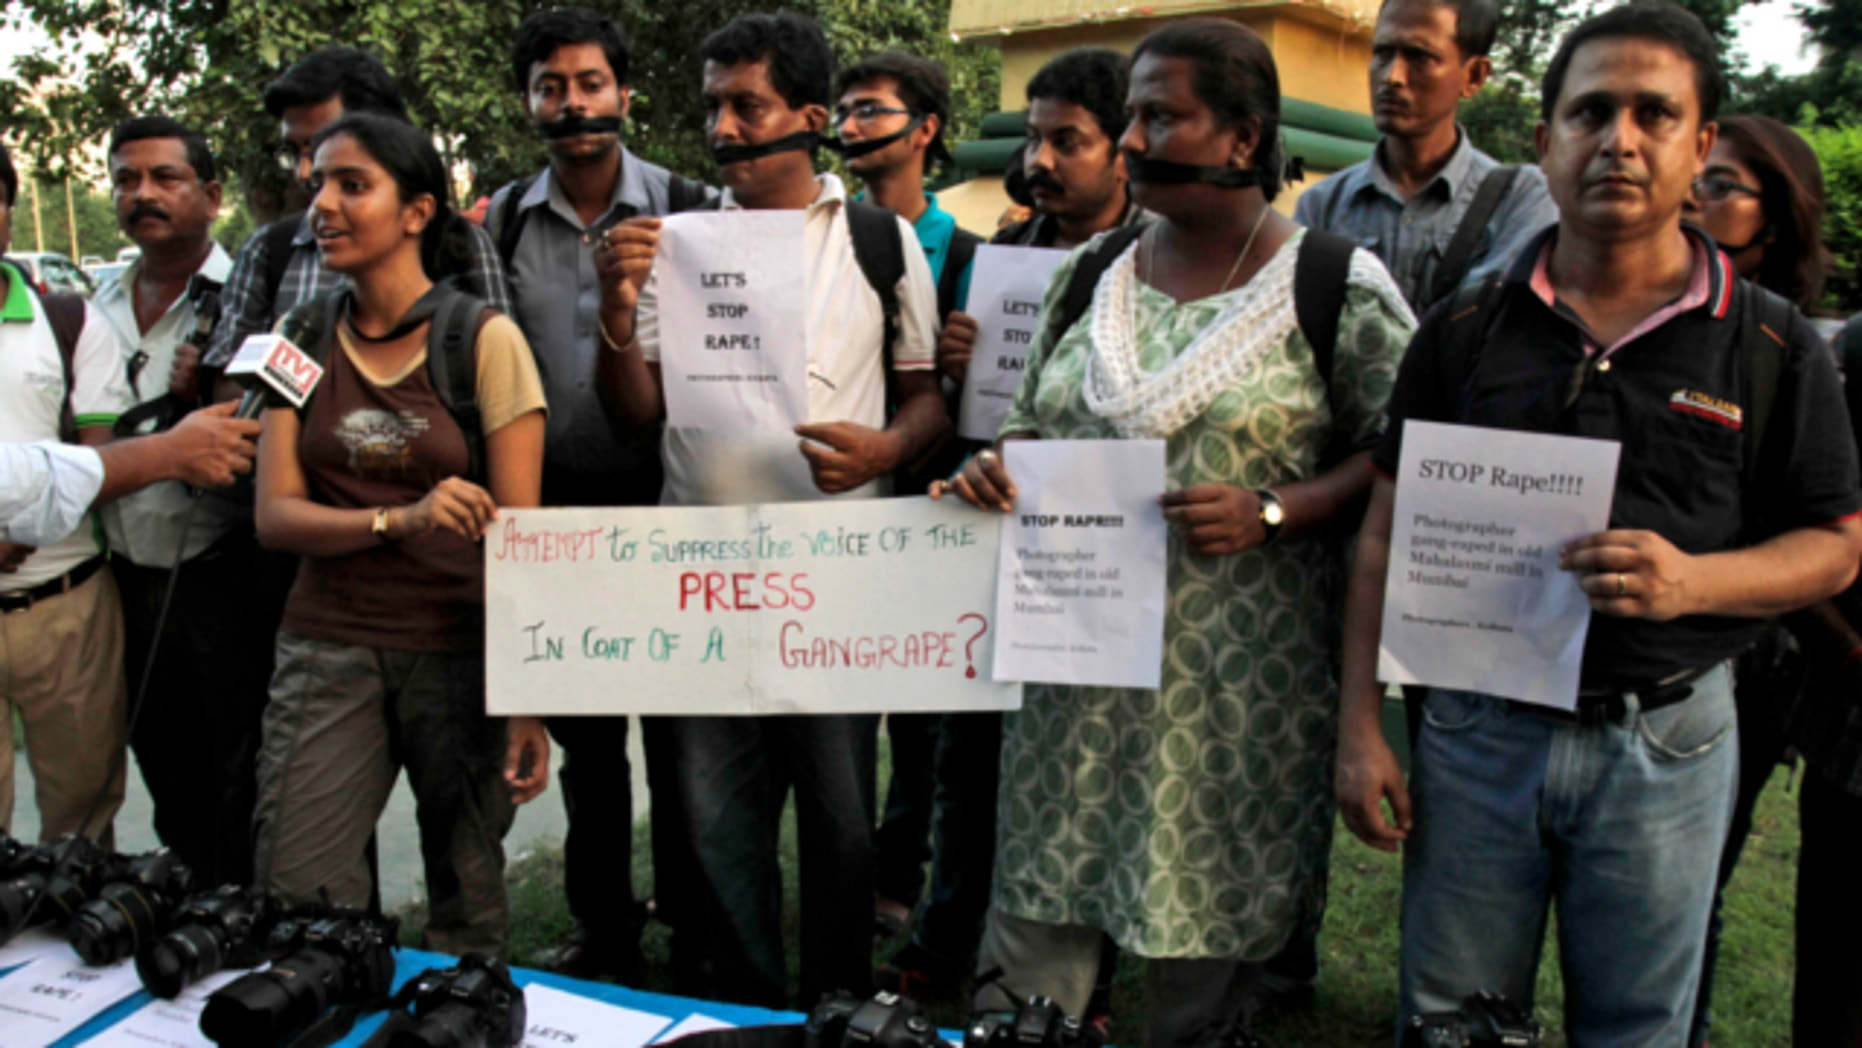 Aug 23, 2013: Indian journalists participate in a protest against the gang rape of a 22-year-old woman photojournalist in Kolkata, India.